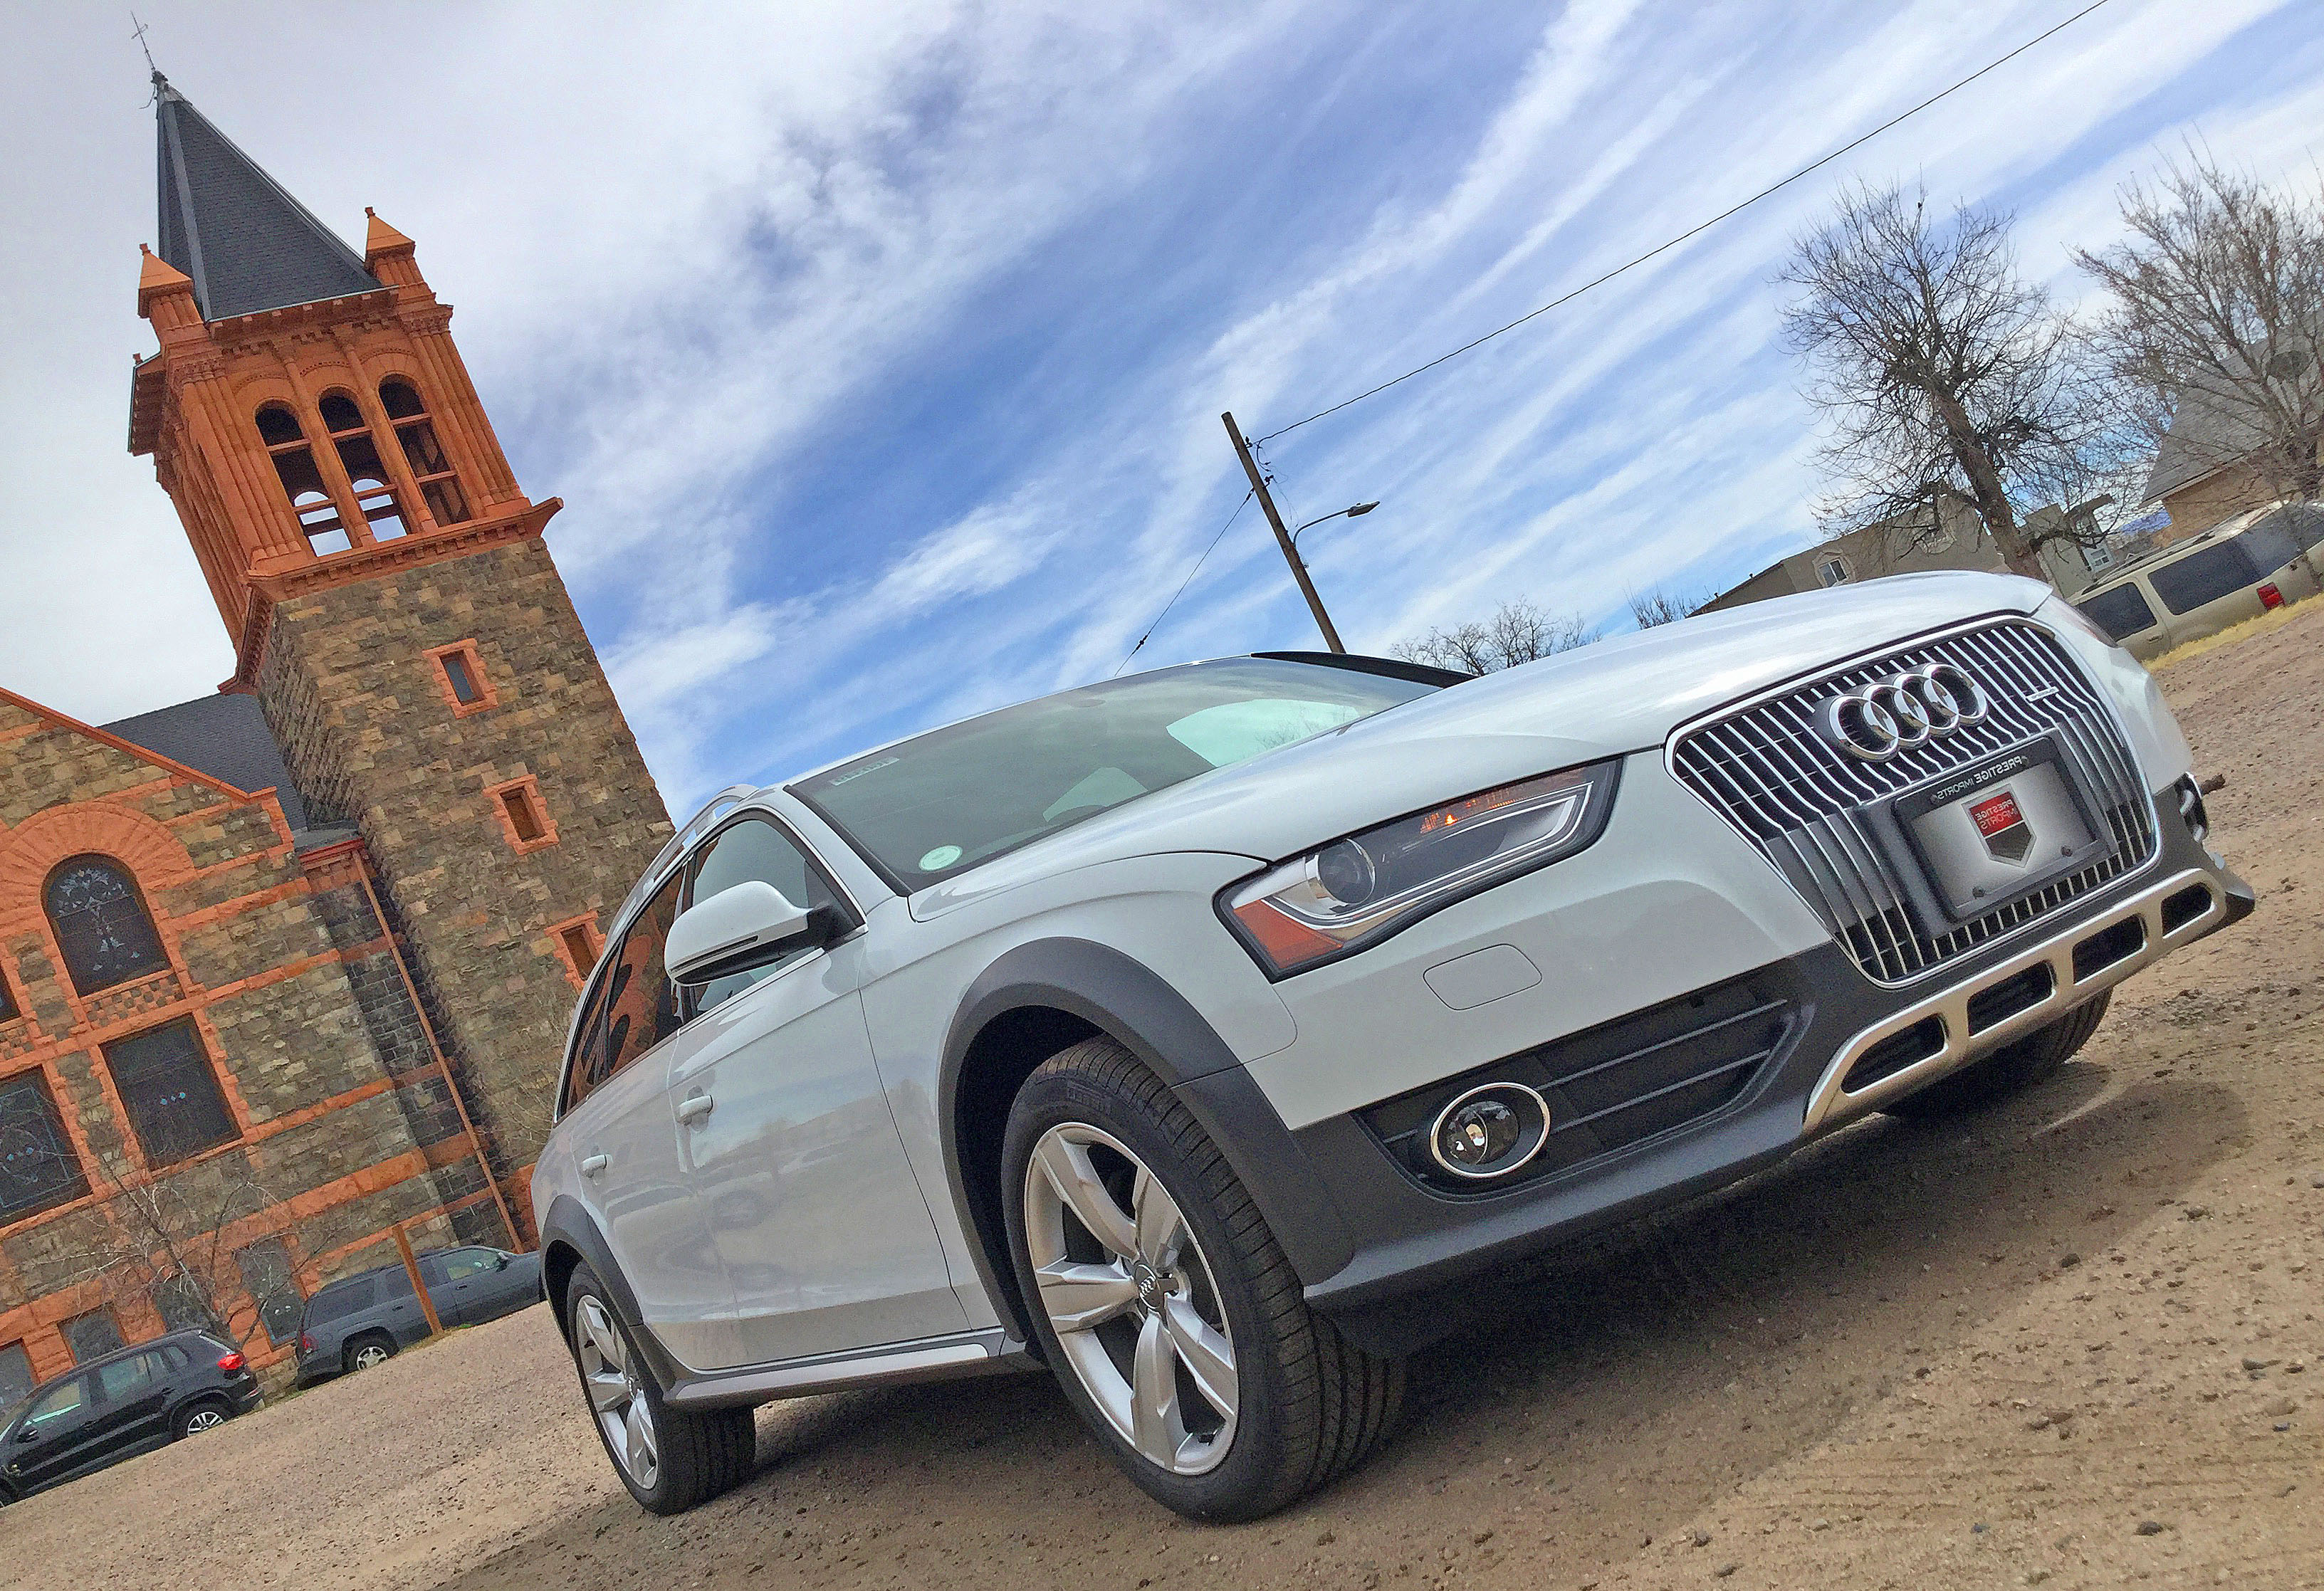 An Audi allroad sits in front of a church in the Denver Highlands neighborhood